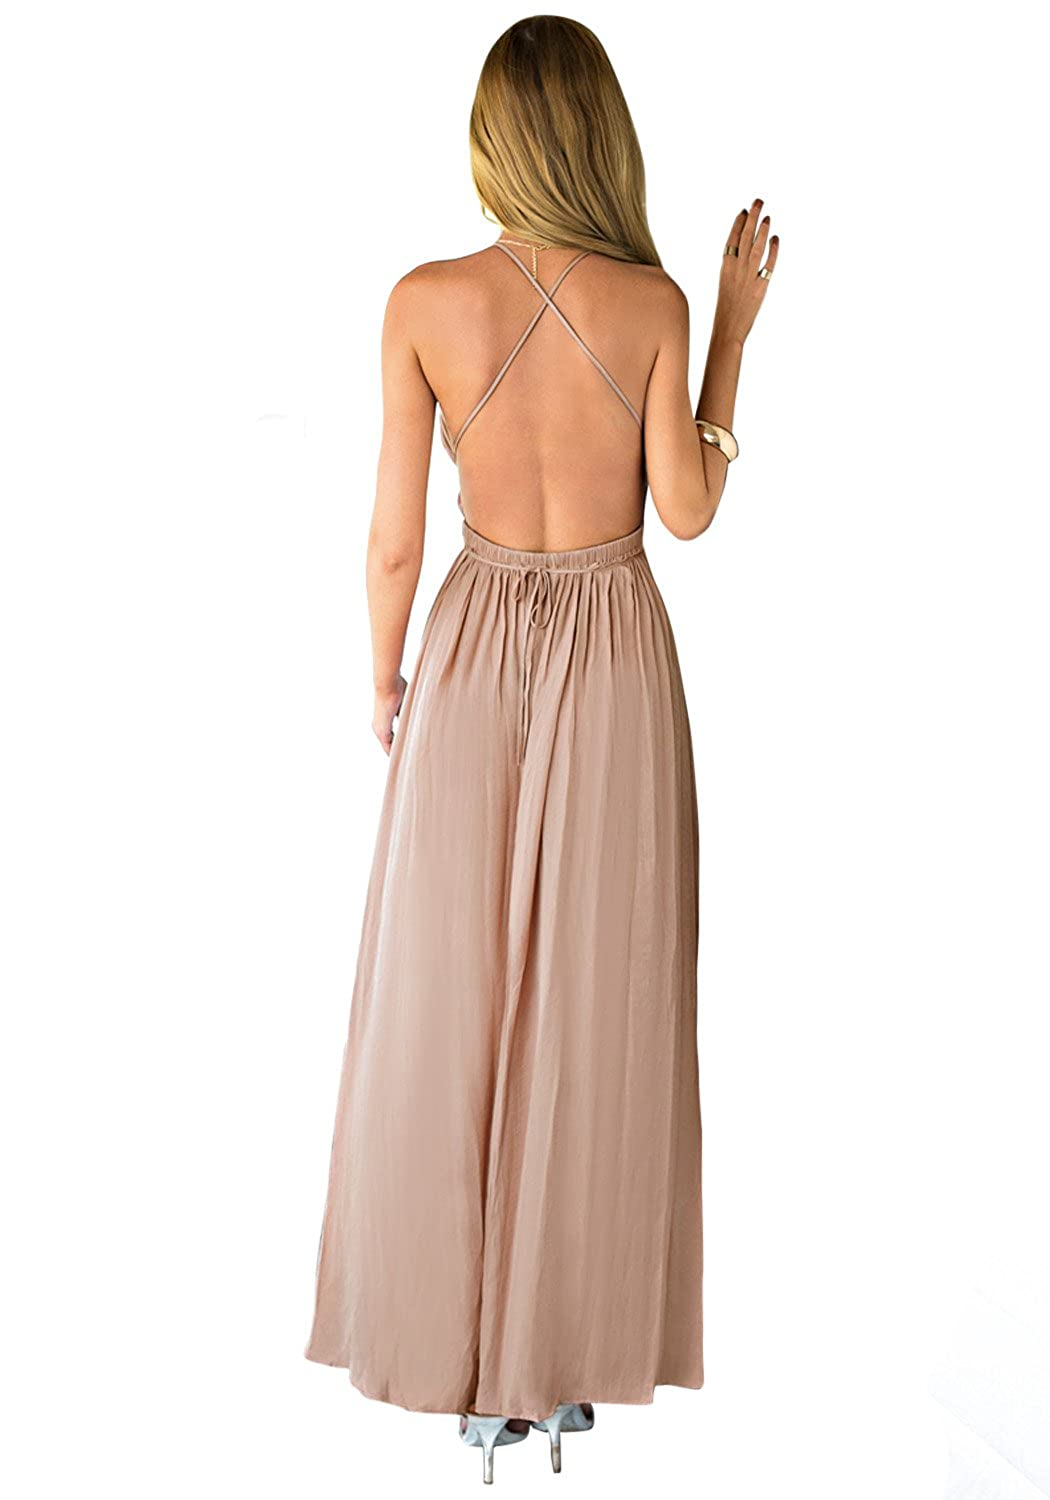 Look Boo Kstore Brewers Deep V Neck Strap Dress Sleeveless Womens Maxi Dress with Belt - Brown - 10: Amazon.co.uk: Clothing